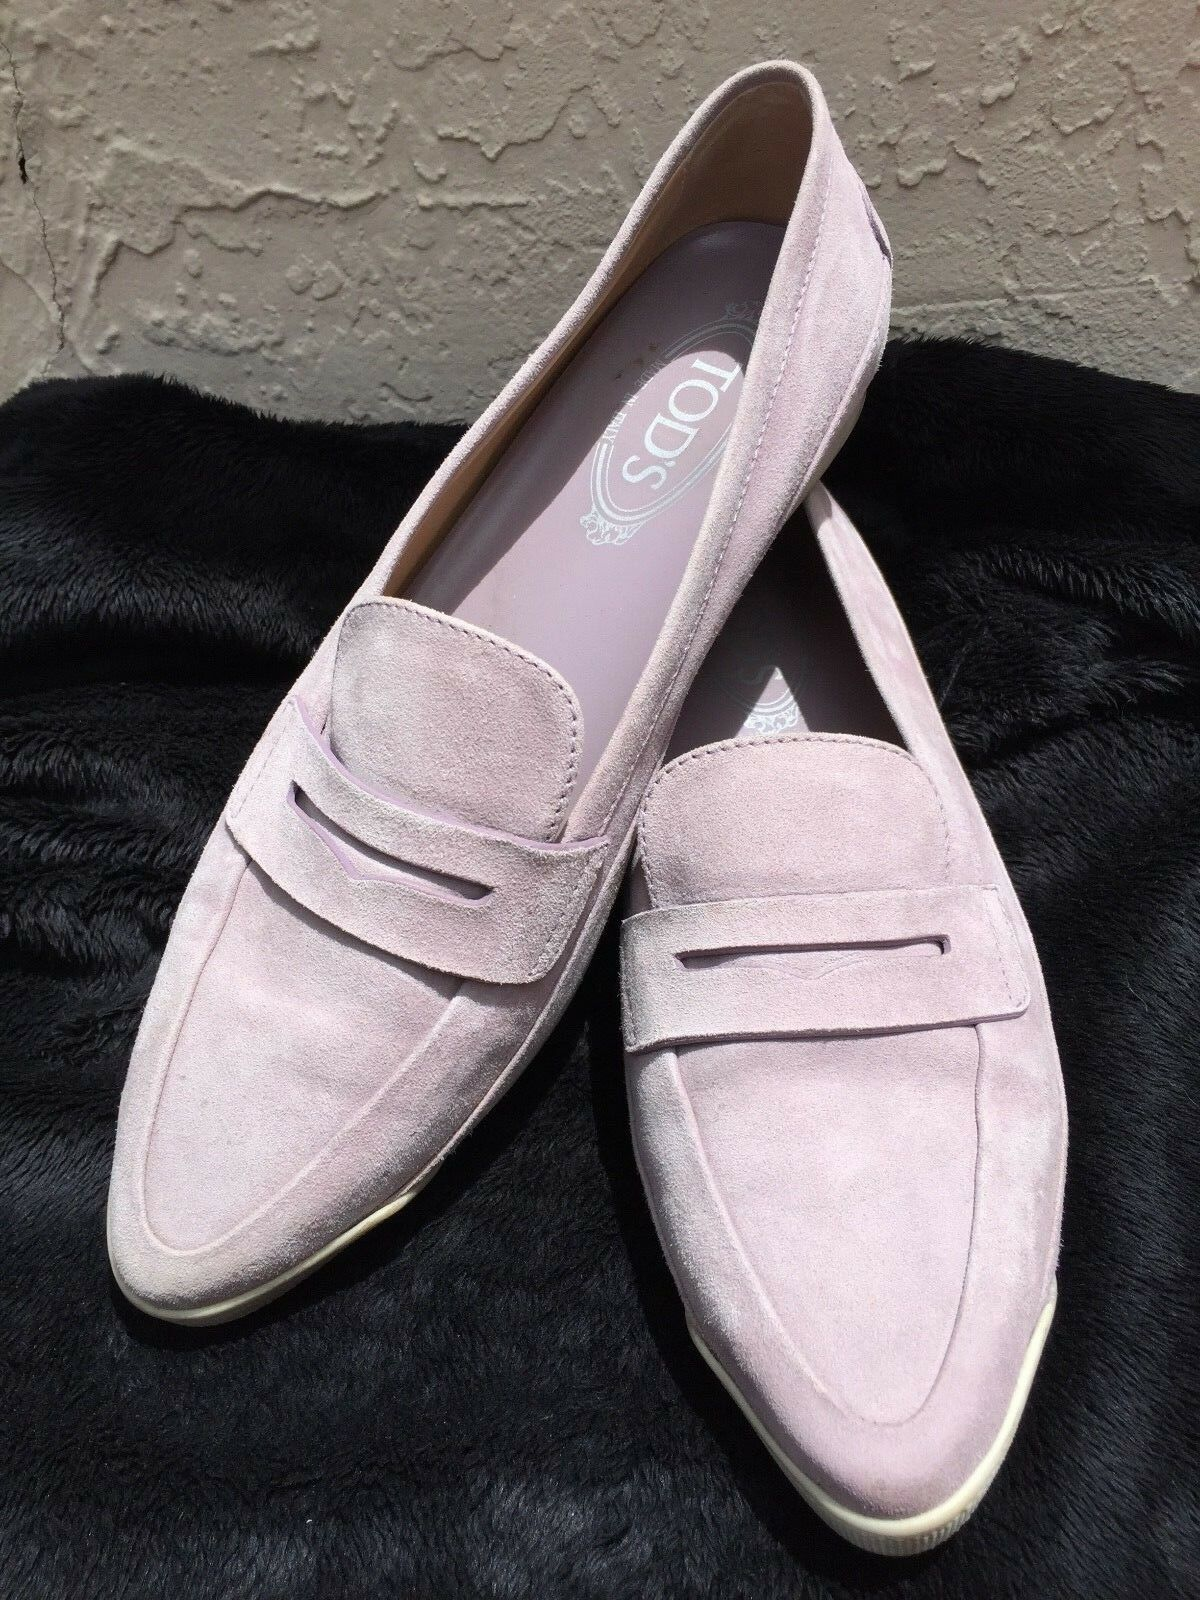 TODS VIOLET SUEDE DRIVING PENNY LOAFERS MOCCASINS SZ 40